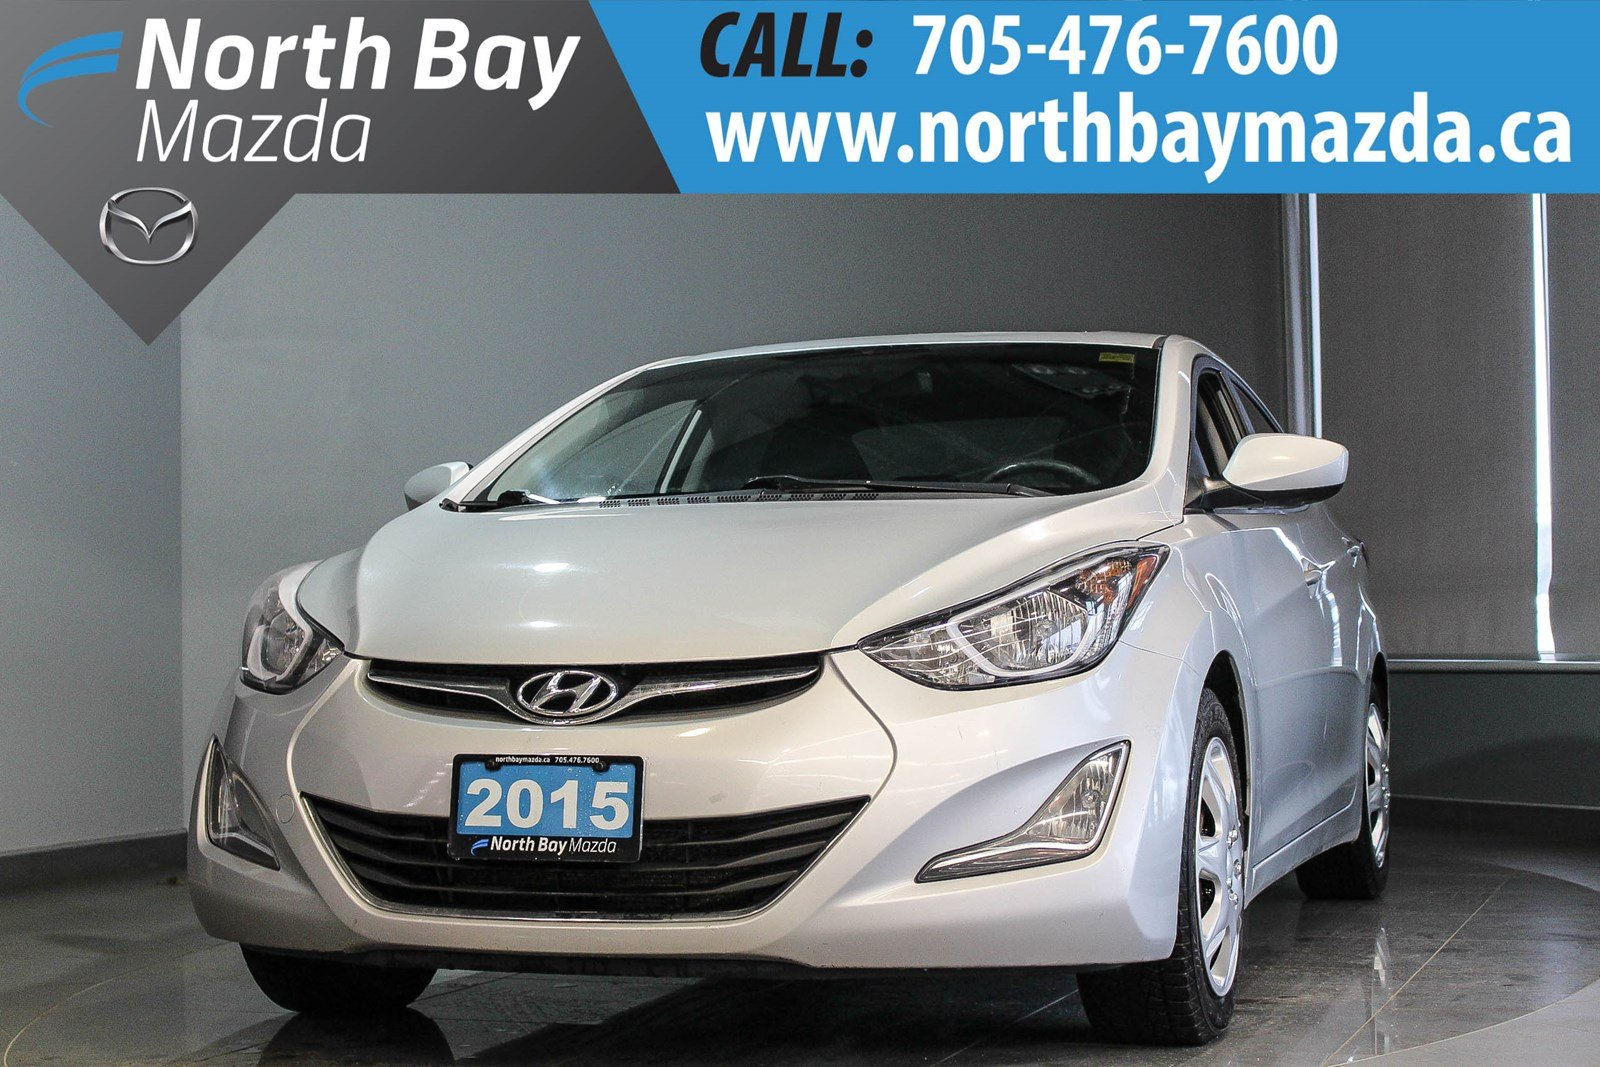 Pre-Owned 2015 Hyundai Elantra Limited with Sunroof, Cruise Control, Bluetooth